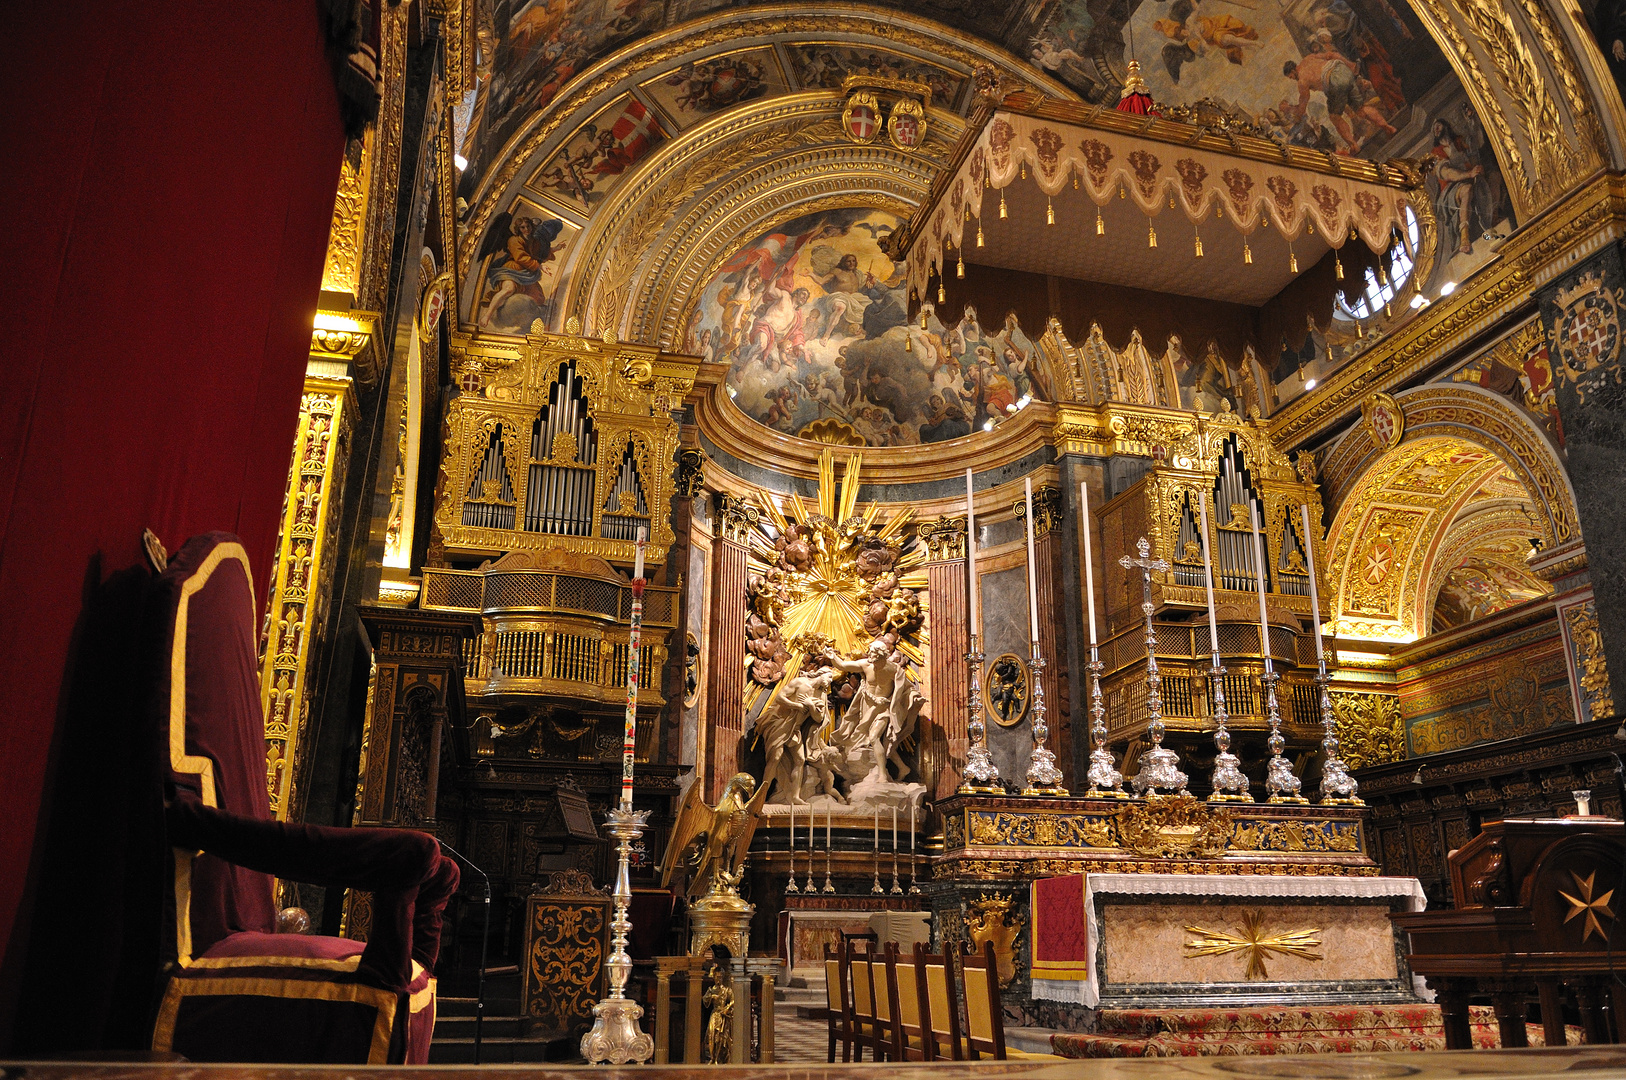 Valetta - St. John's Co Cathedral